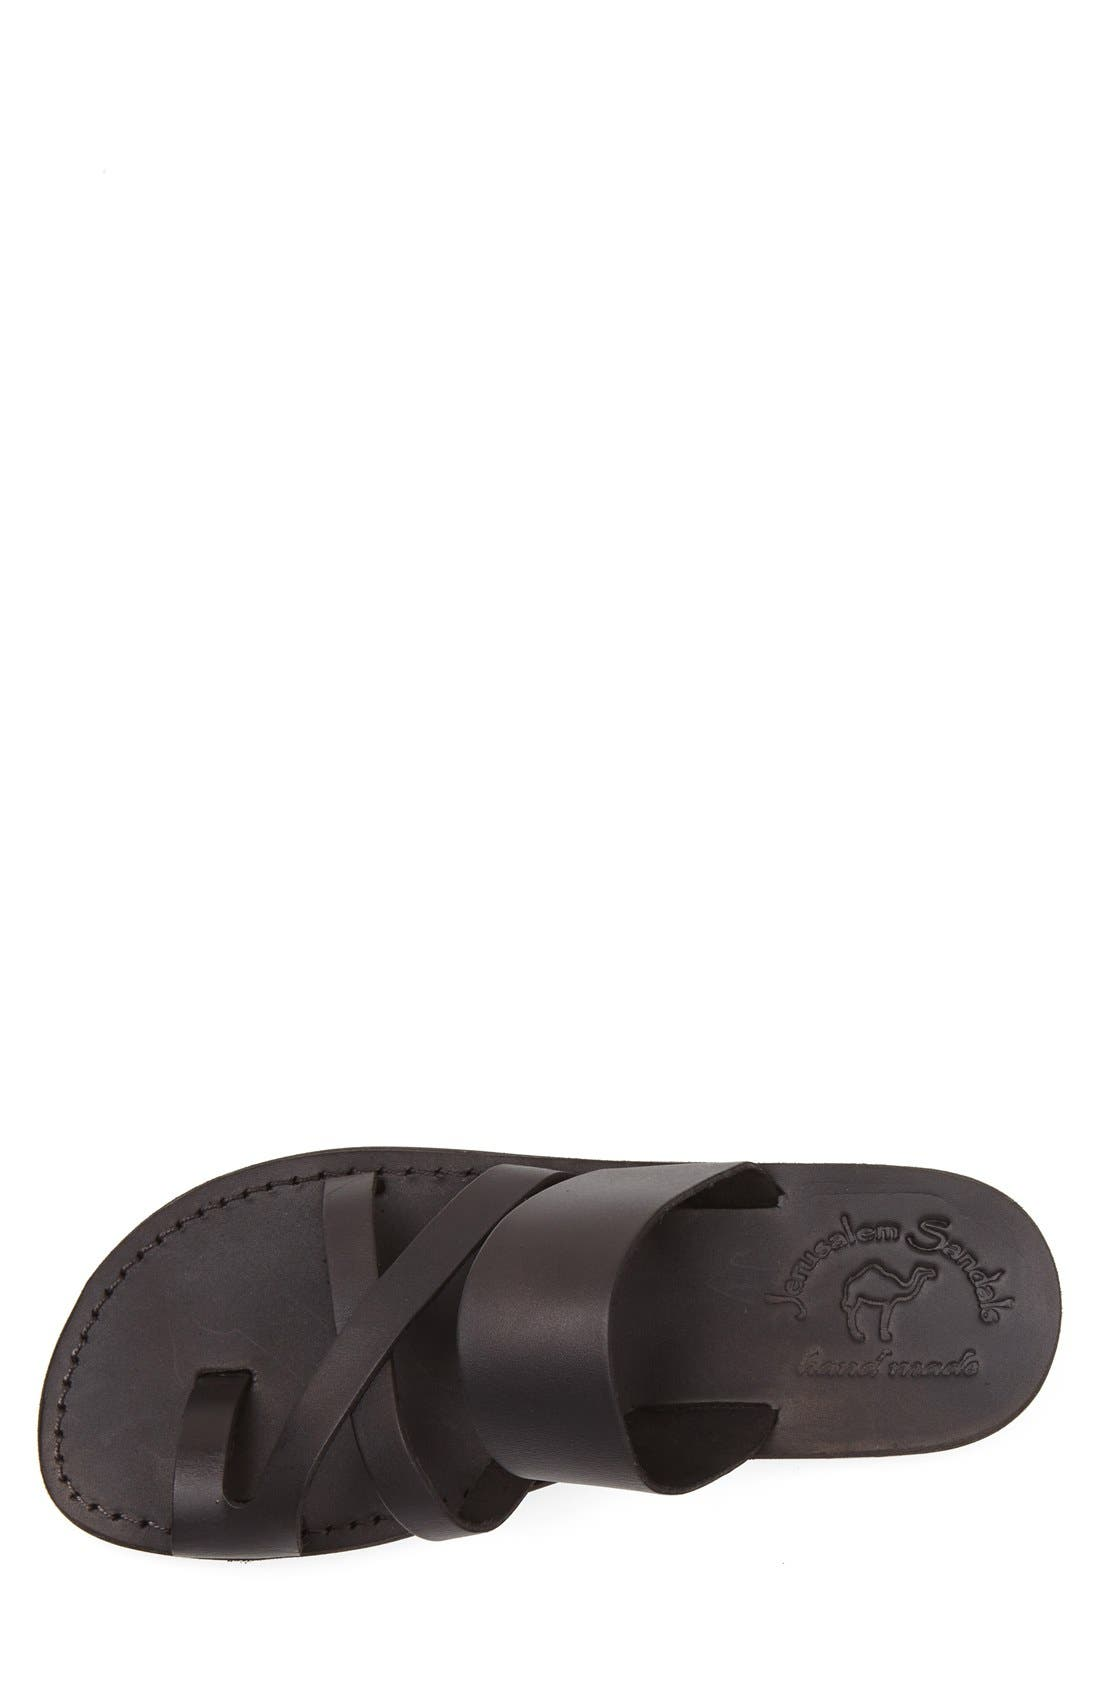 'The Good Shepherd' Leather Sandal,                             Alternate thumbnail 3, color,                             001